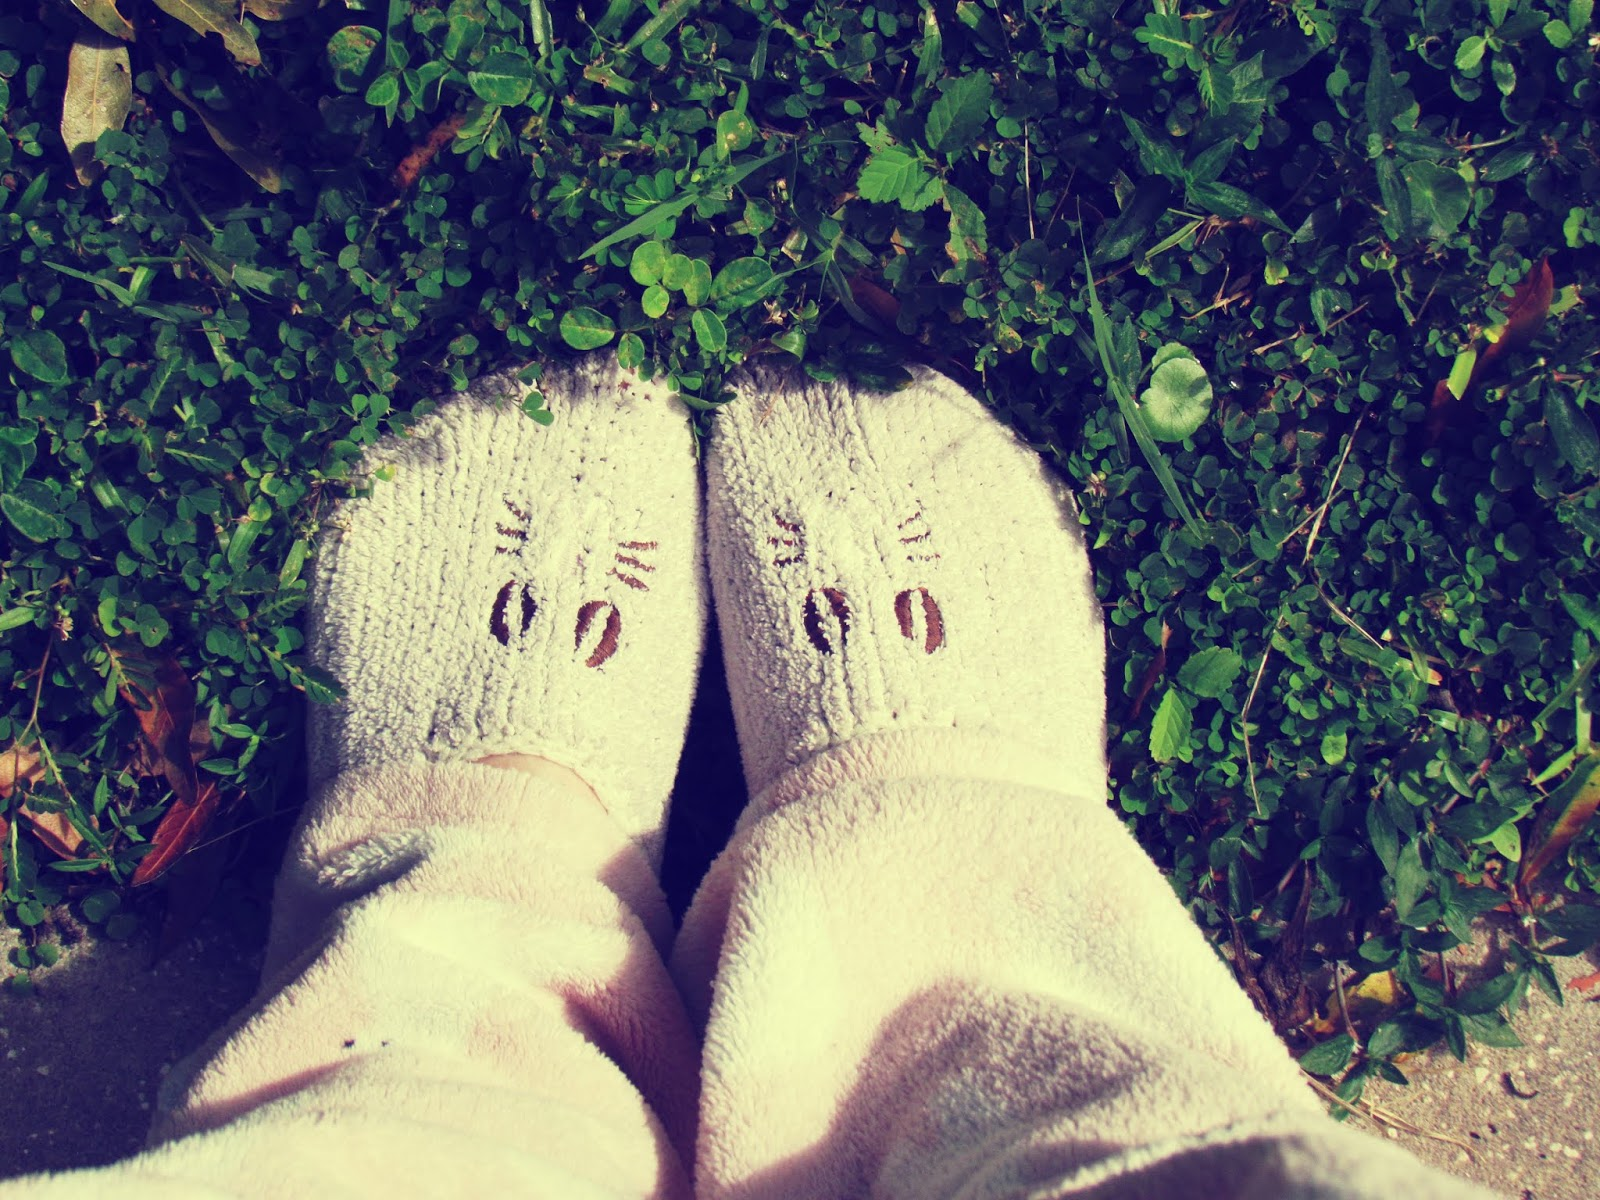 A girl wearing white bunny slippers in the bright green grass with clovers for good luck!